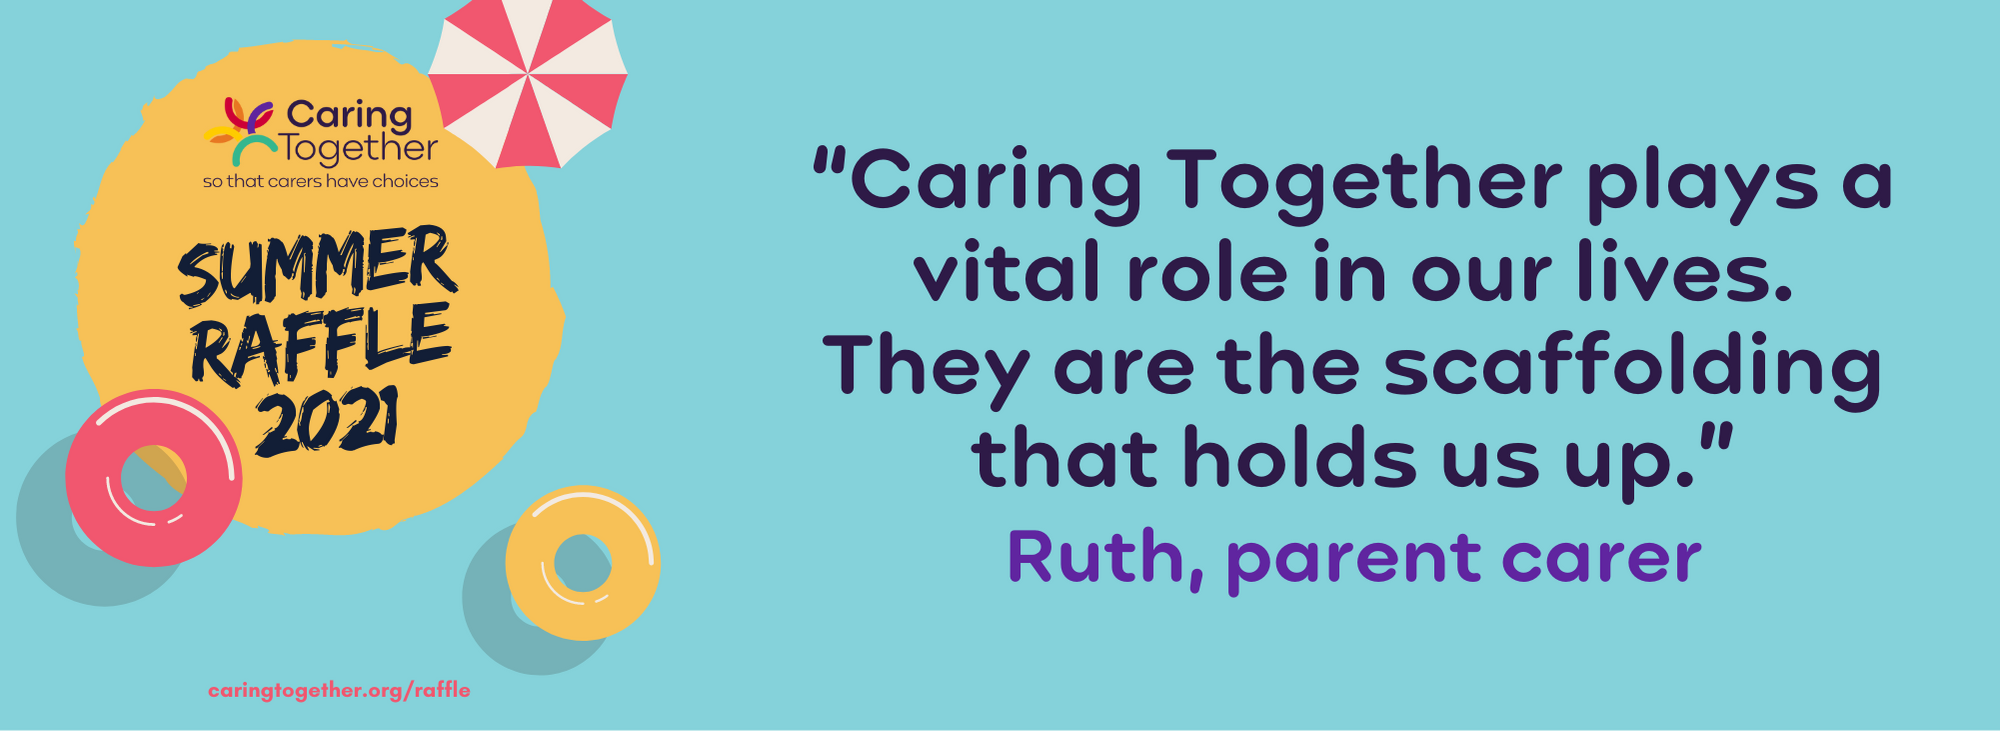 """""""Caring Together plays a vital role in our lives. They are the scaffolding that holds us up."""" Ruth, parent carer"""